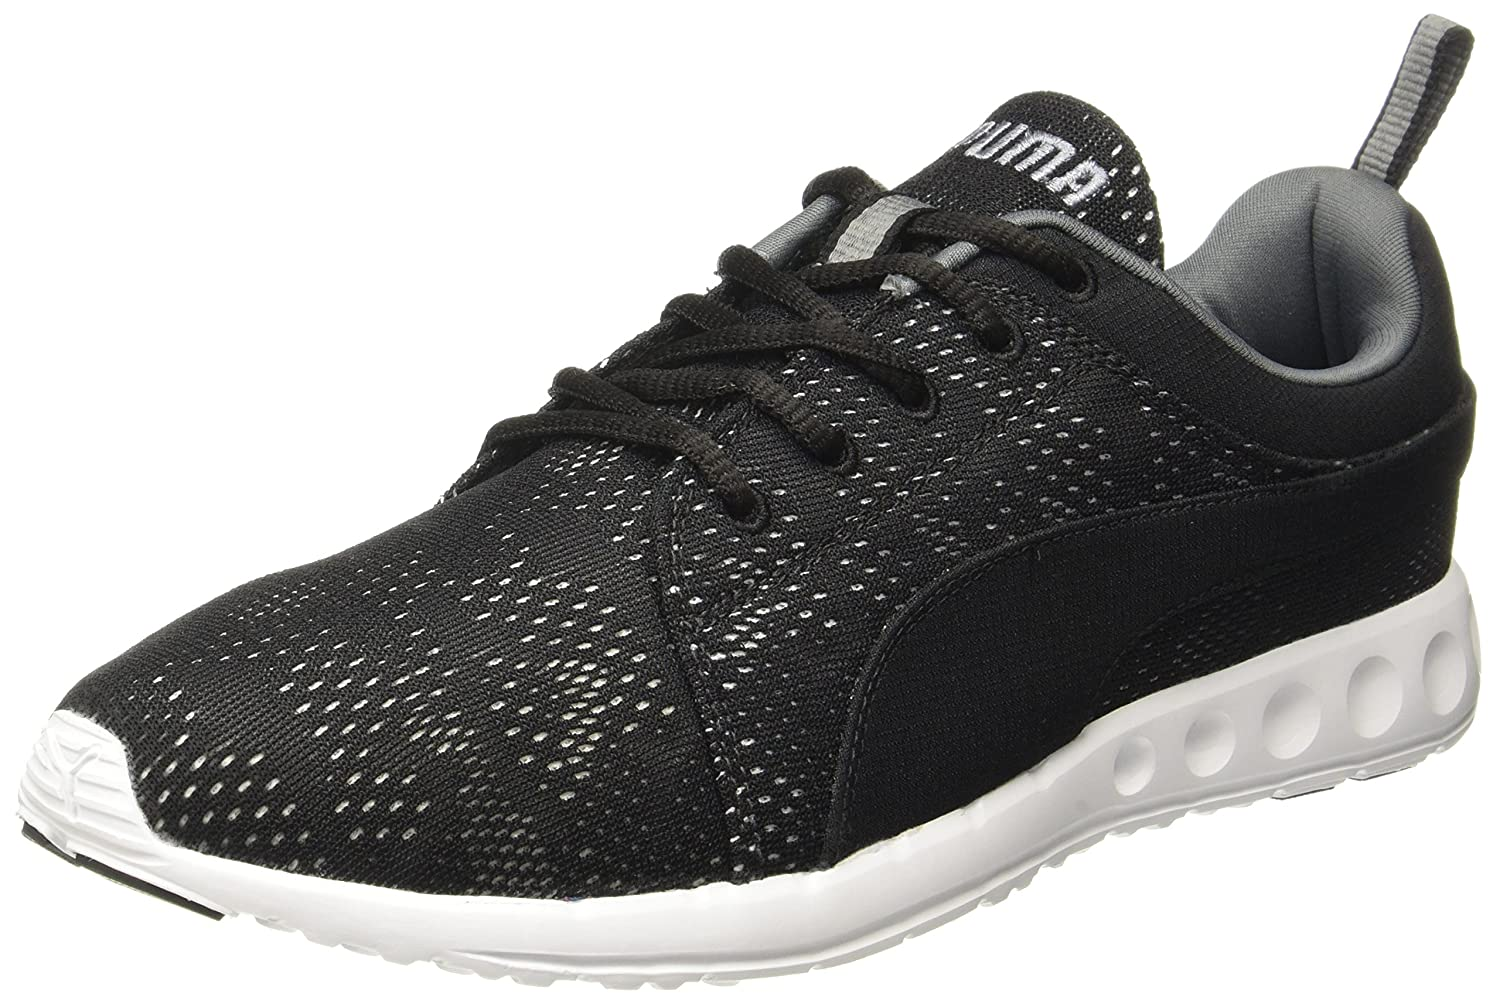 Puma Men s Carson Camo Mesh Idp Running Shoes  Buy Online at Low Prices in  India - Amazon.in 1a62ba39c